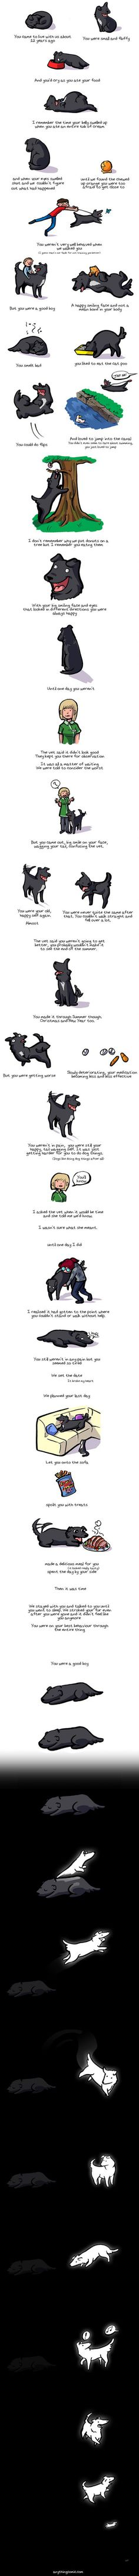 This Heartwarming Illustration Of A Dog's Life